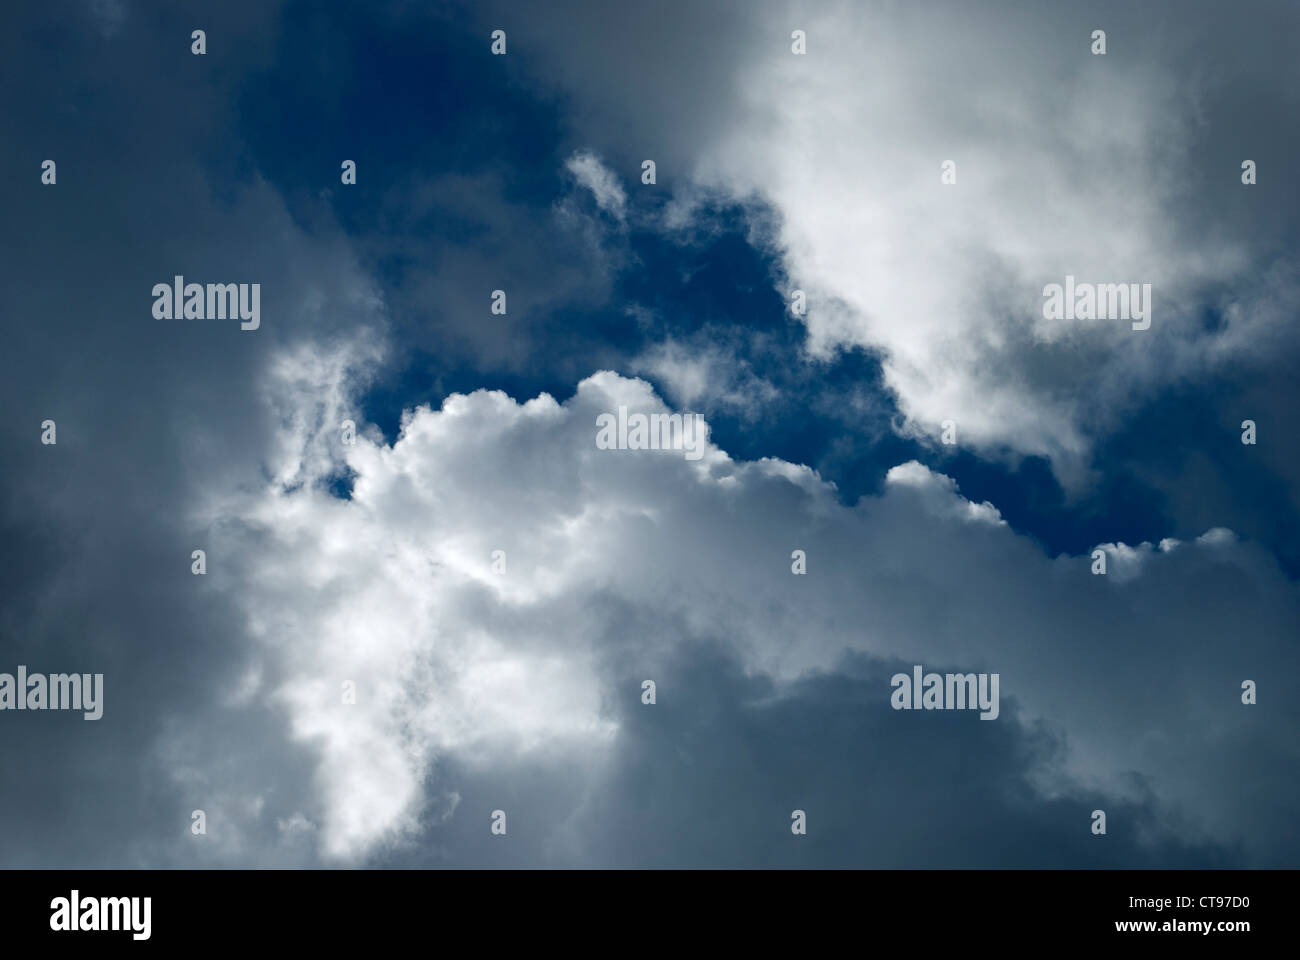 stratus clouds drifting across the sky on a bright day Stock Photo